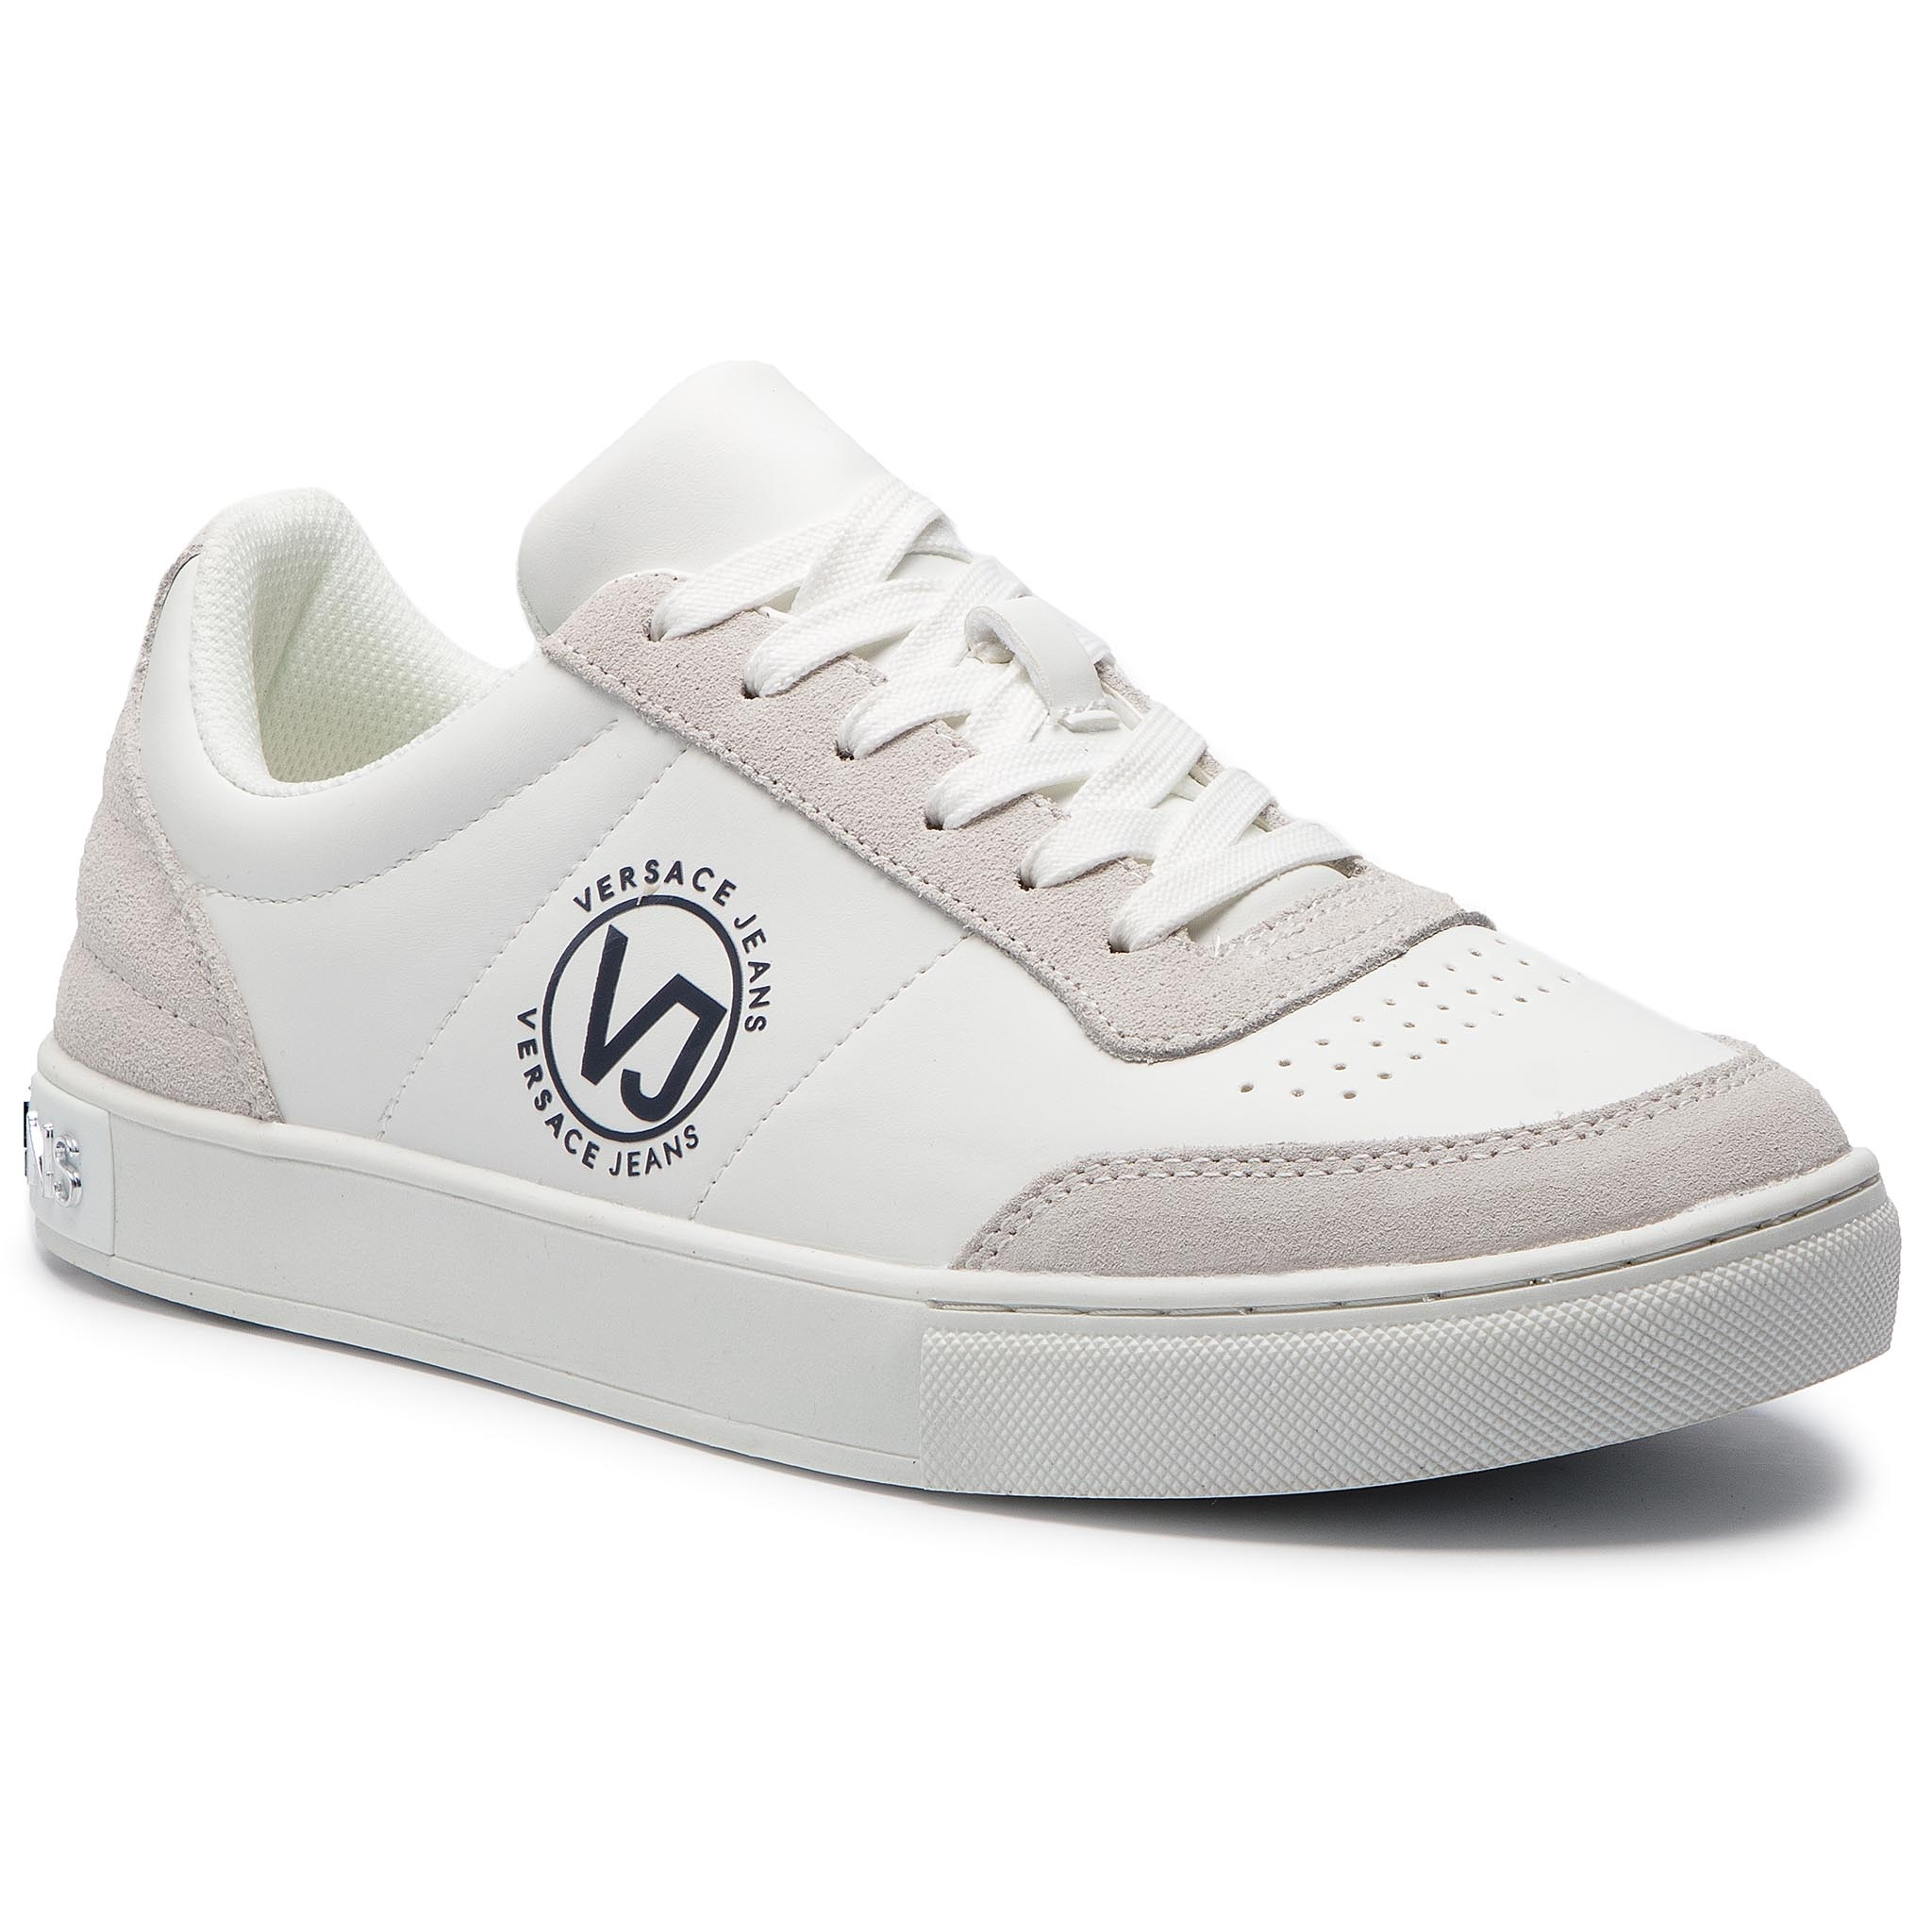 Sneakers VERSACE JEANS - E0YTBSM4 70931 003